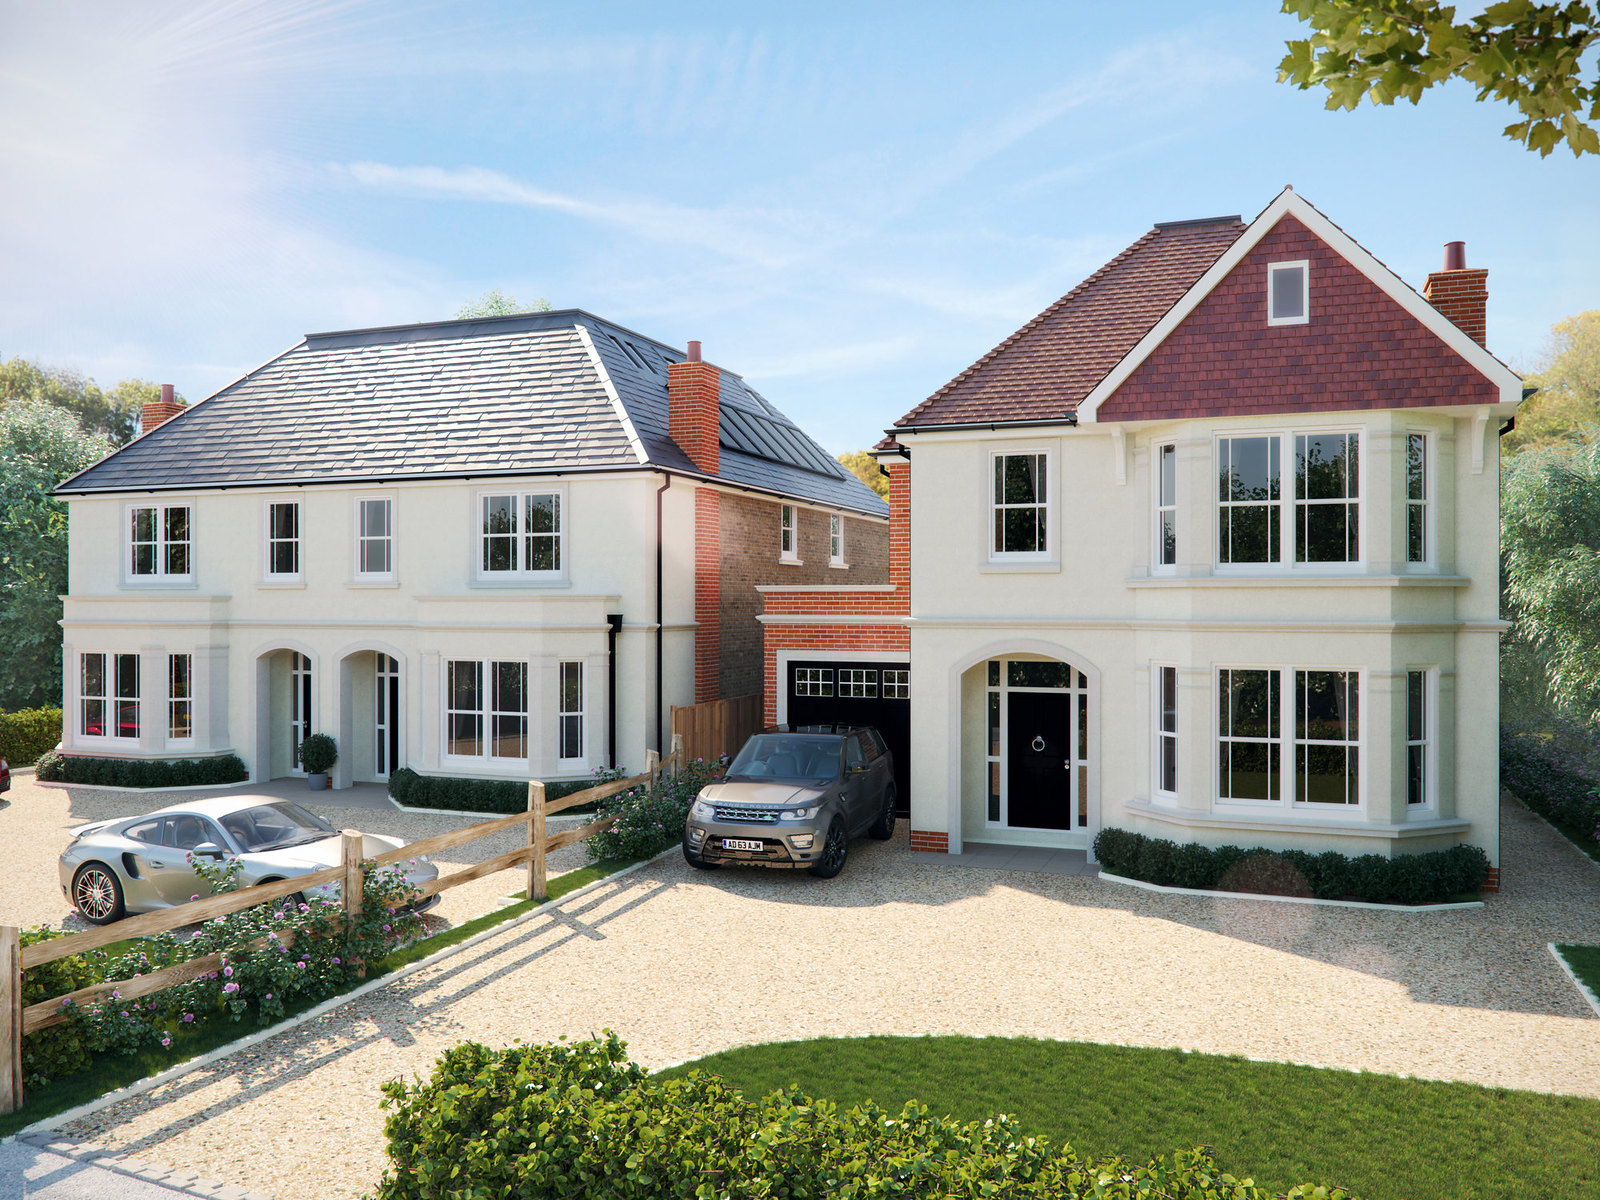 consilium-developments-esher-our-work-developers-ascot-design-view1.jpg